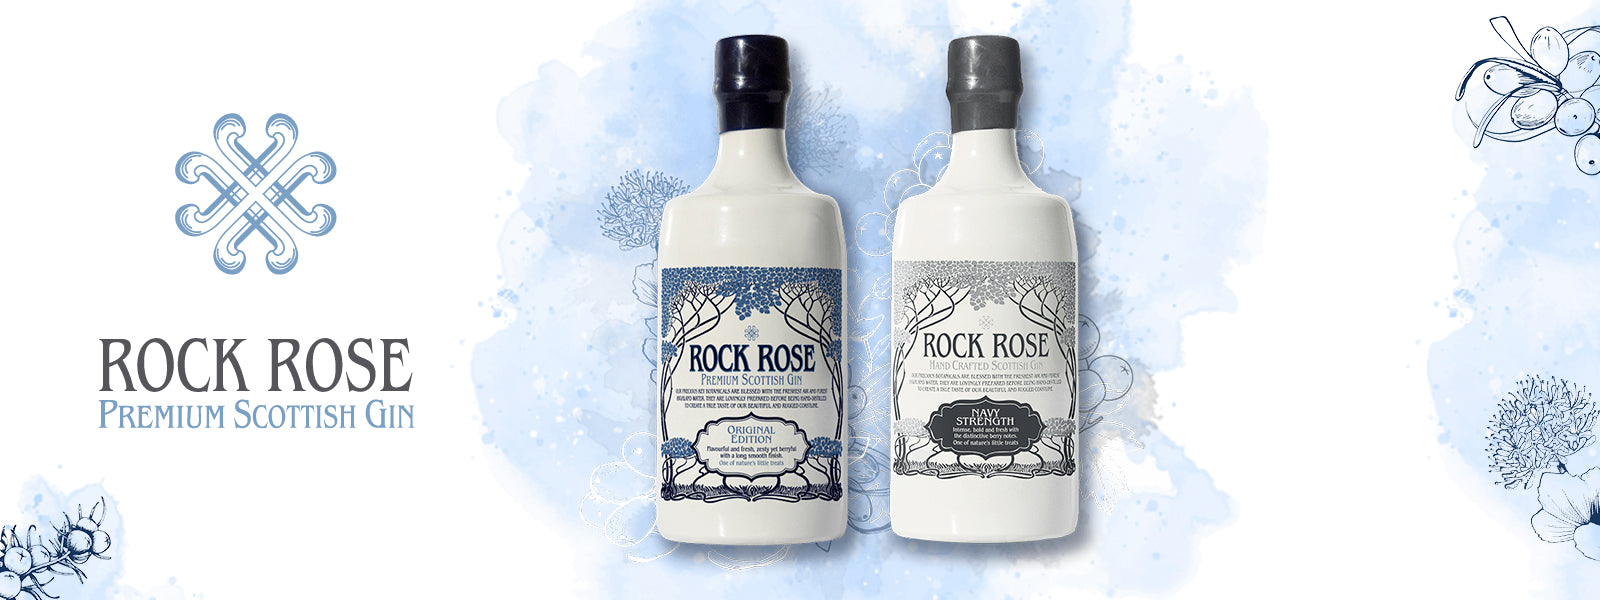 Buy Rock Rose Premium Scottish Gin, Whiskey, Tequila, Vodka and Gin Online at CaskCartel.com